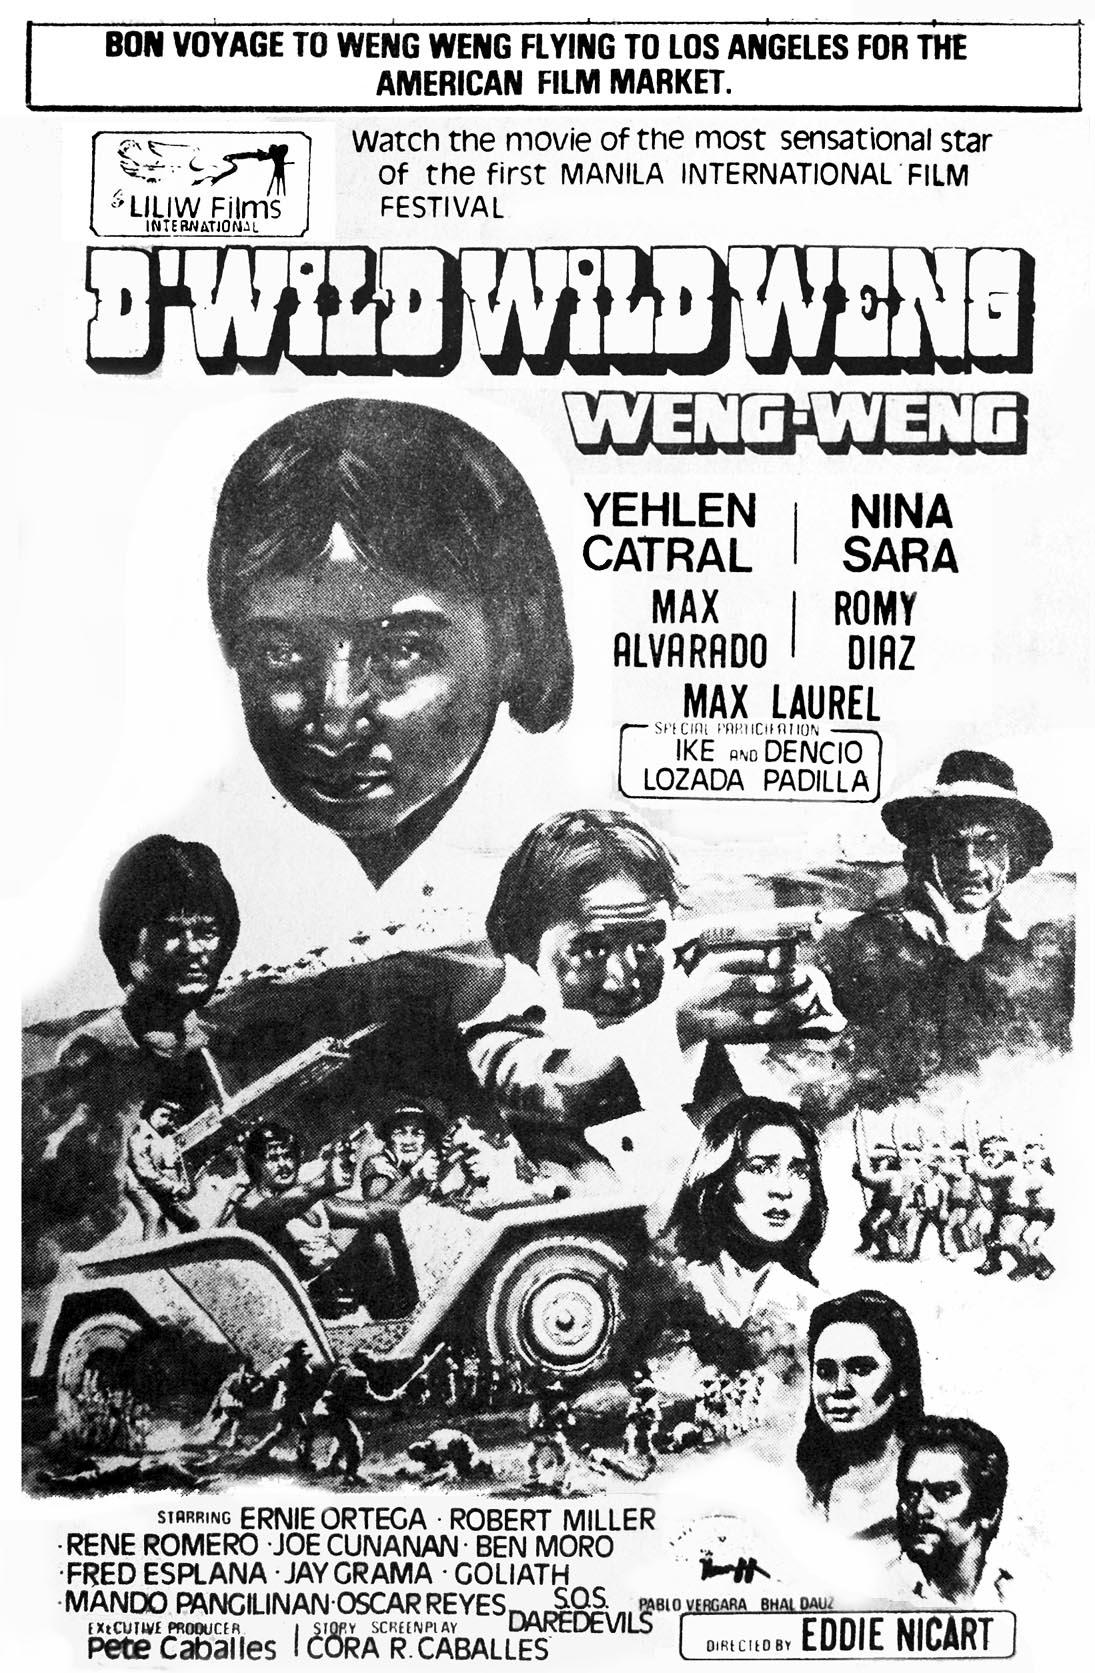 1982 - D?Wild Wild Weng (Liliw Films International)